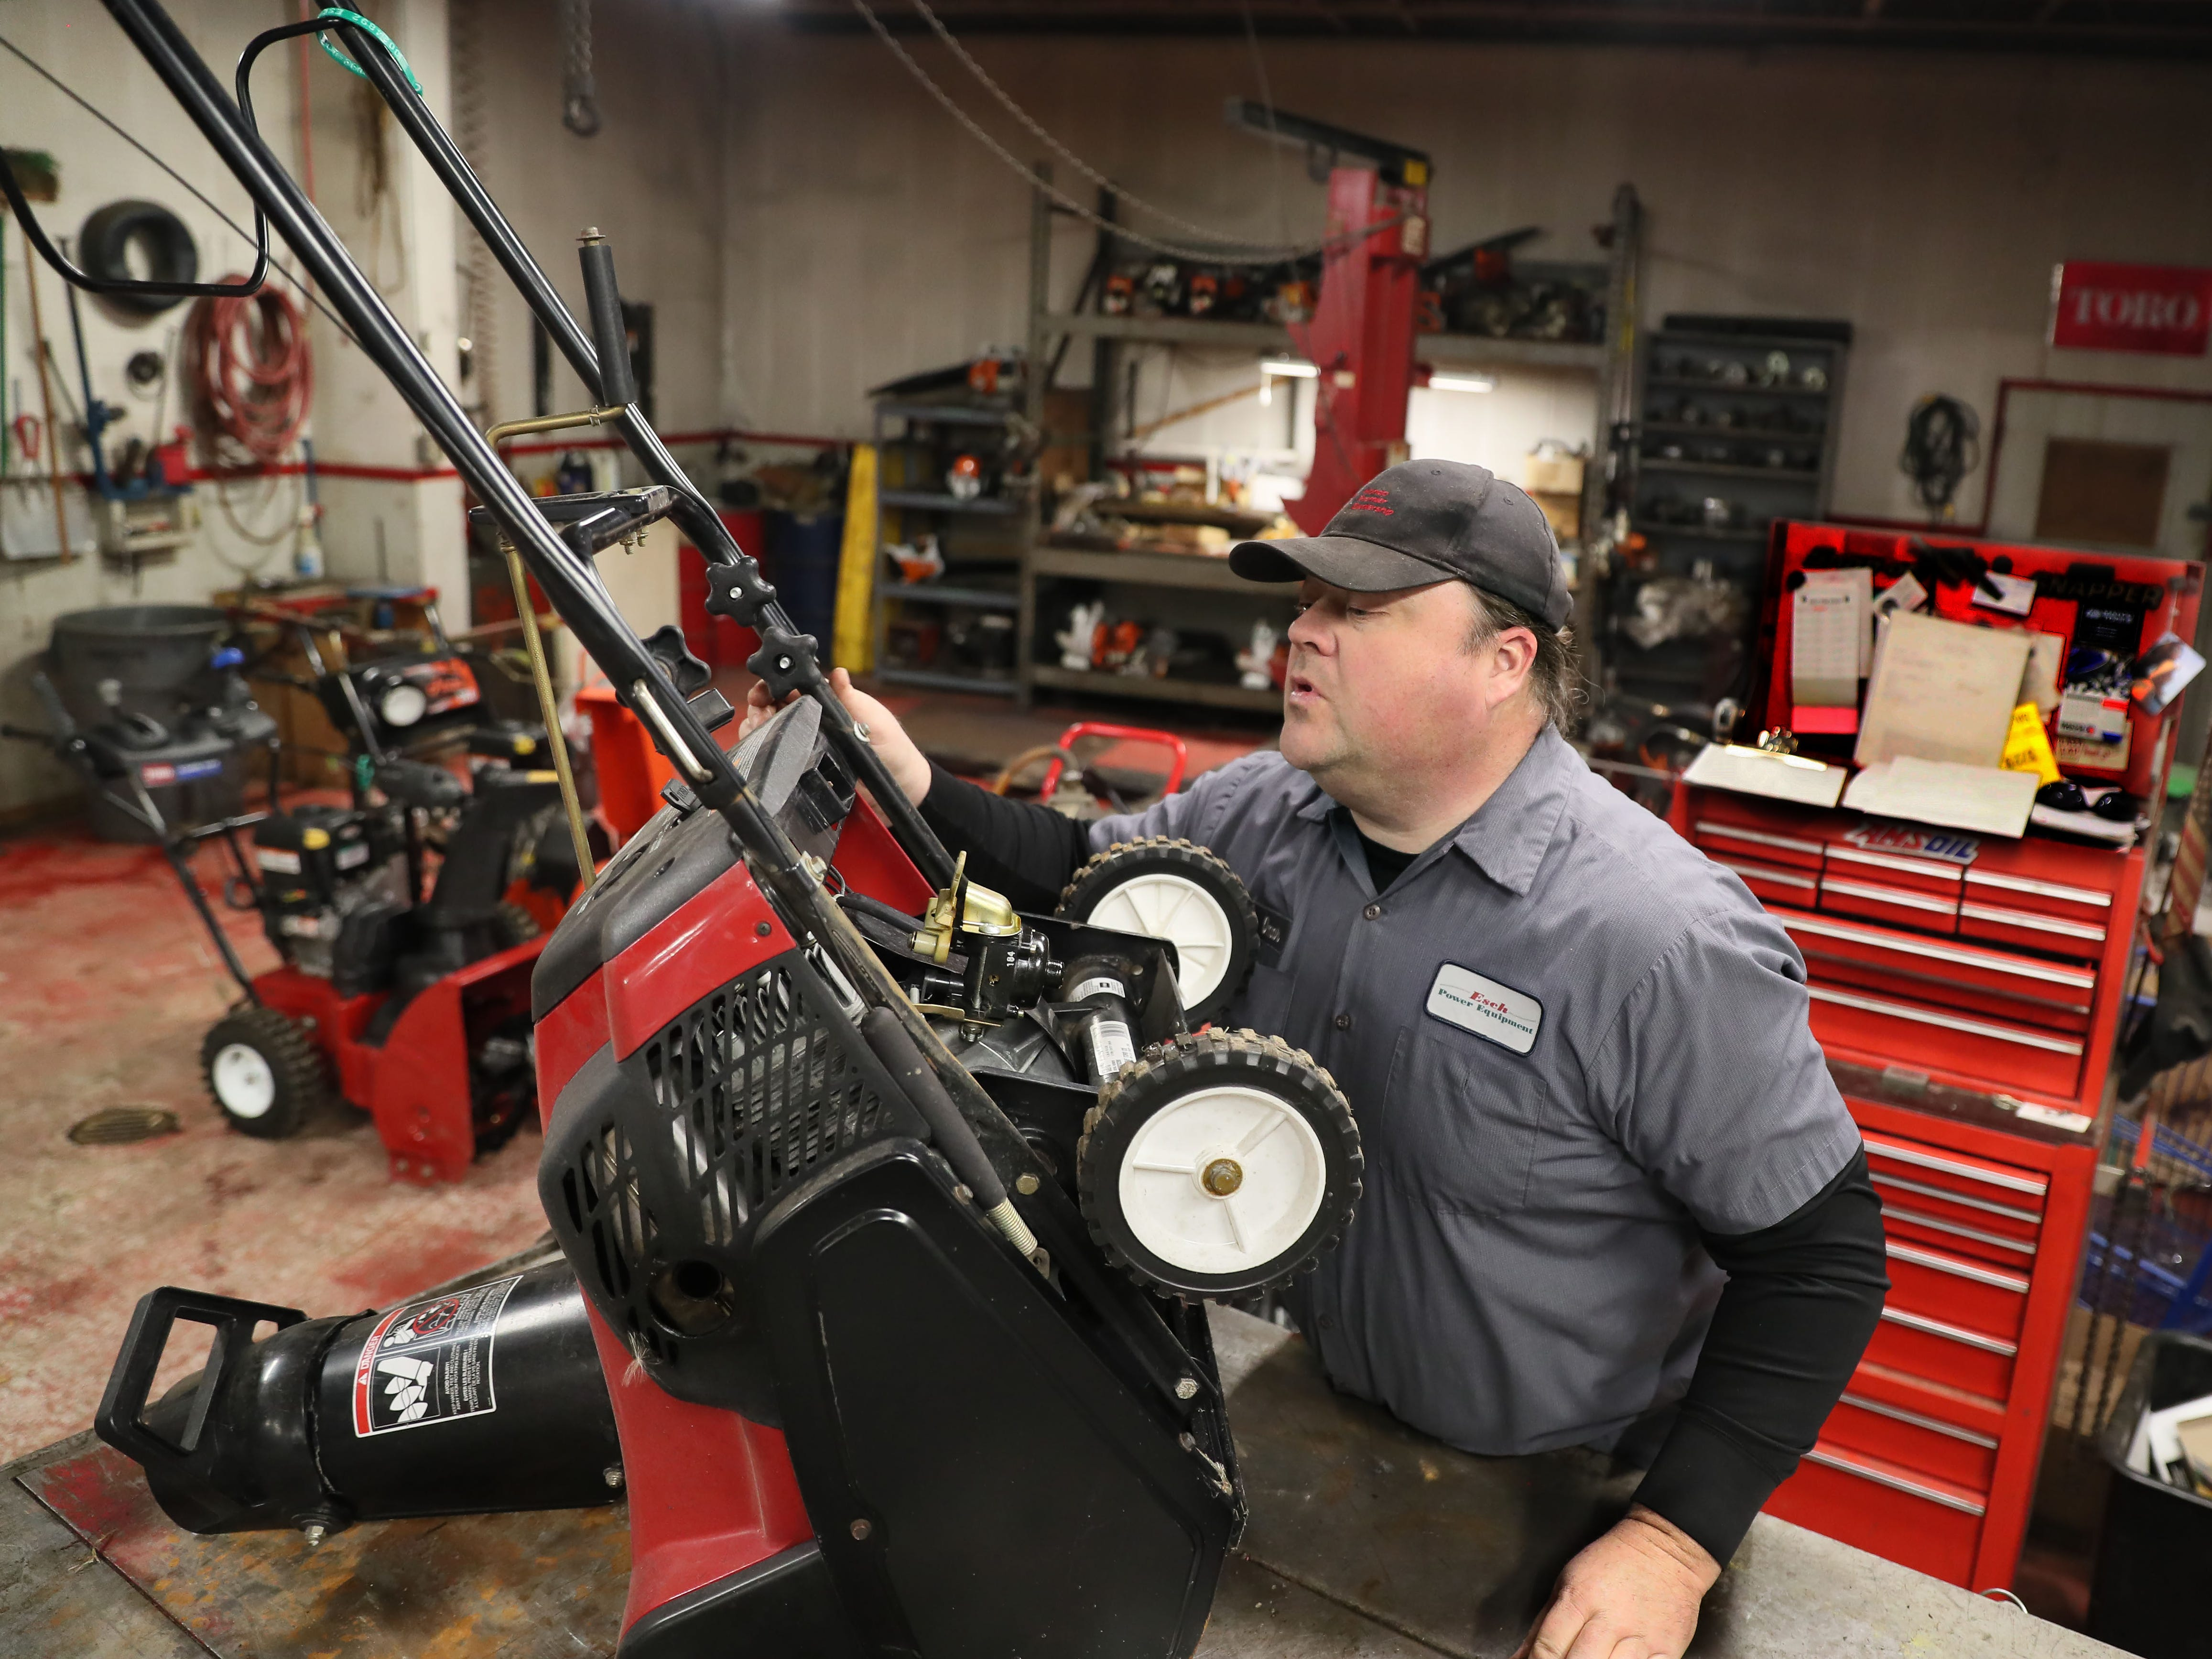 February 11, 2019 Mike Dolski, lead technician at Esch Power Equipment in Oak Creek, works on a customer's snowblower that was not working properly.